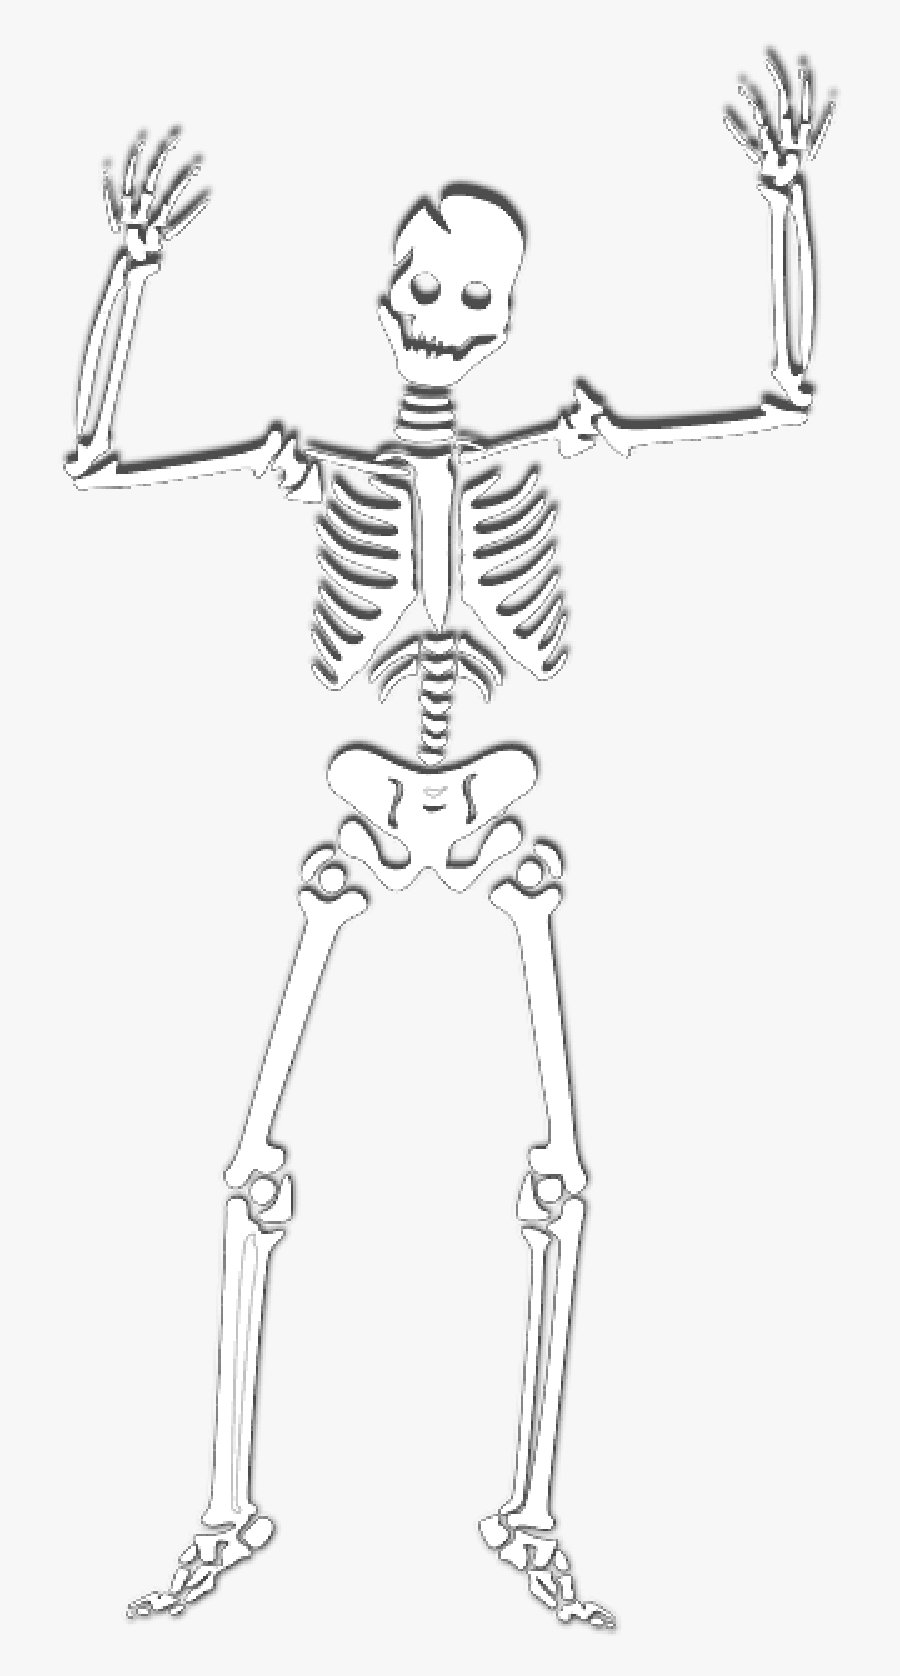 Skeleton Halloween Witch Corps Ghost Skull Spooky - Spooky Scary Skeletons Png, Transparent Clipart